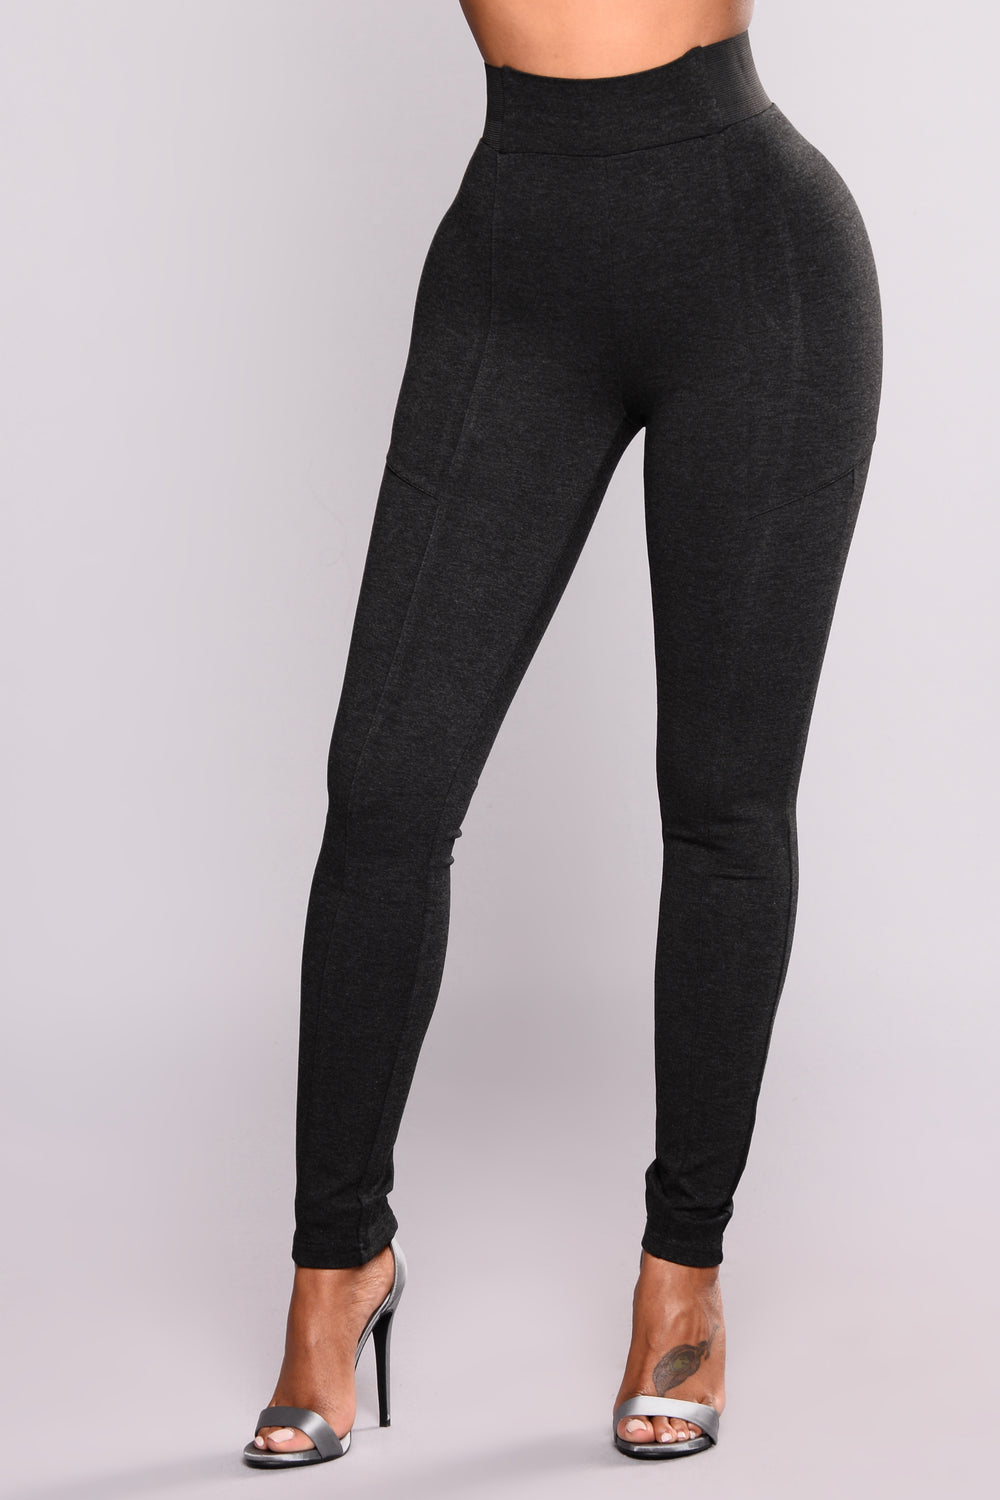 Let it Go High Rise Leggings - Grey